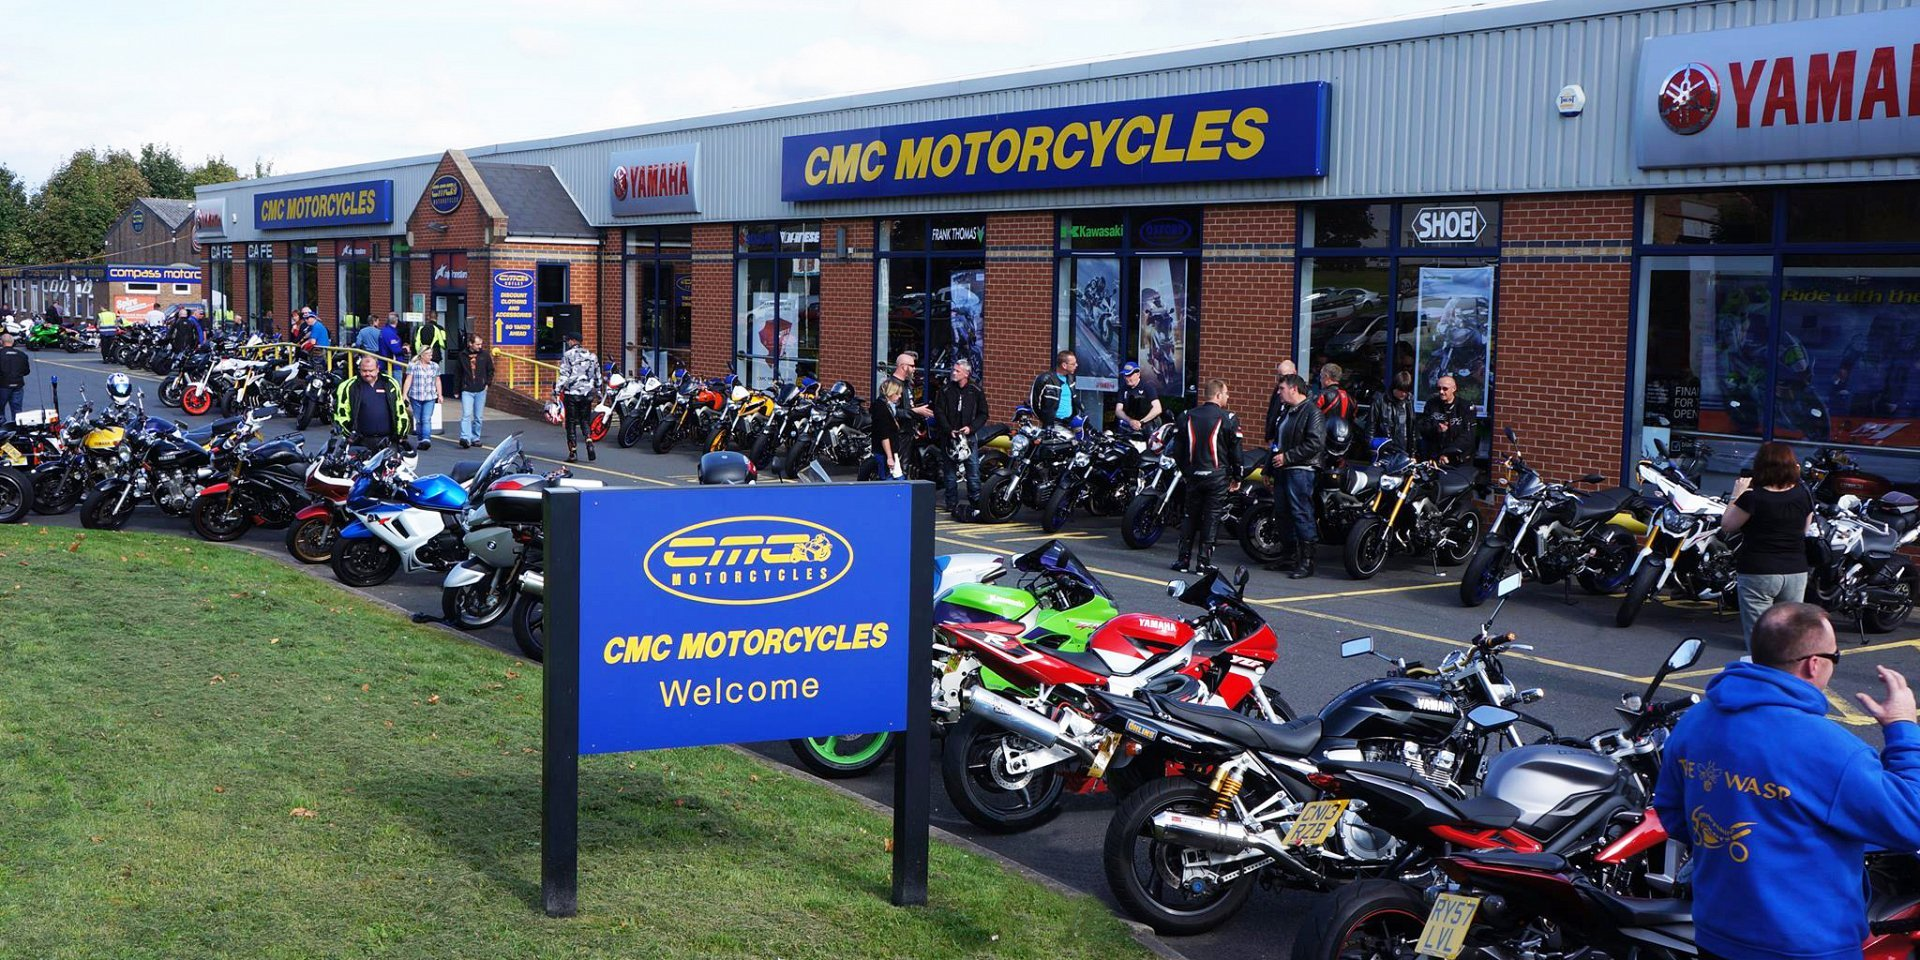 Used bikes for sale  Finance available and part exchange